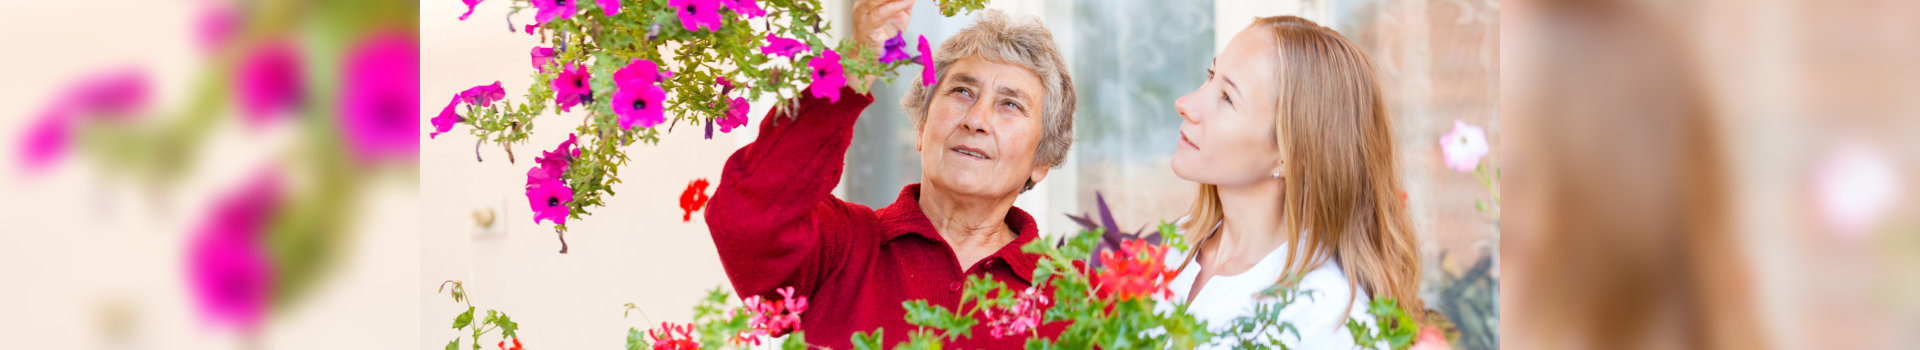 caregiver helping old woman in gardening